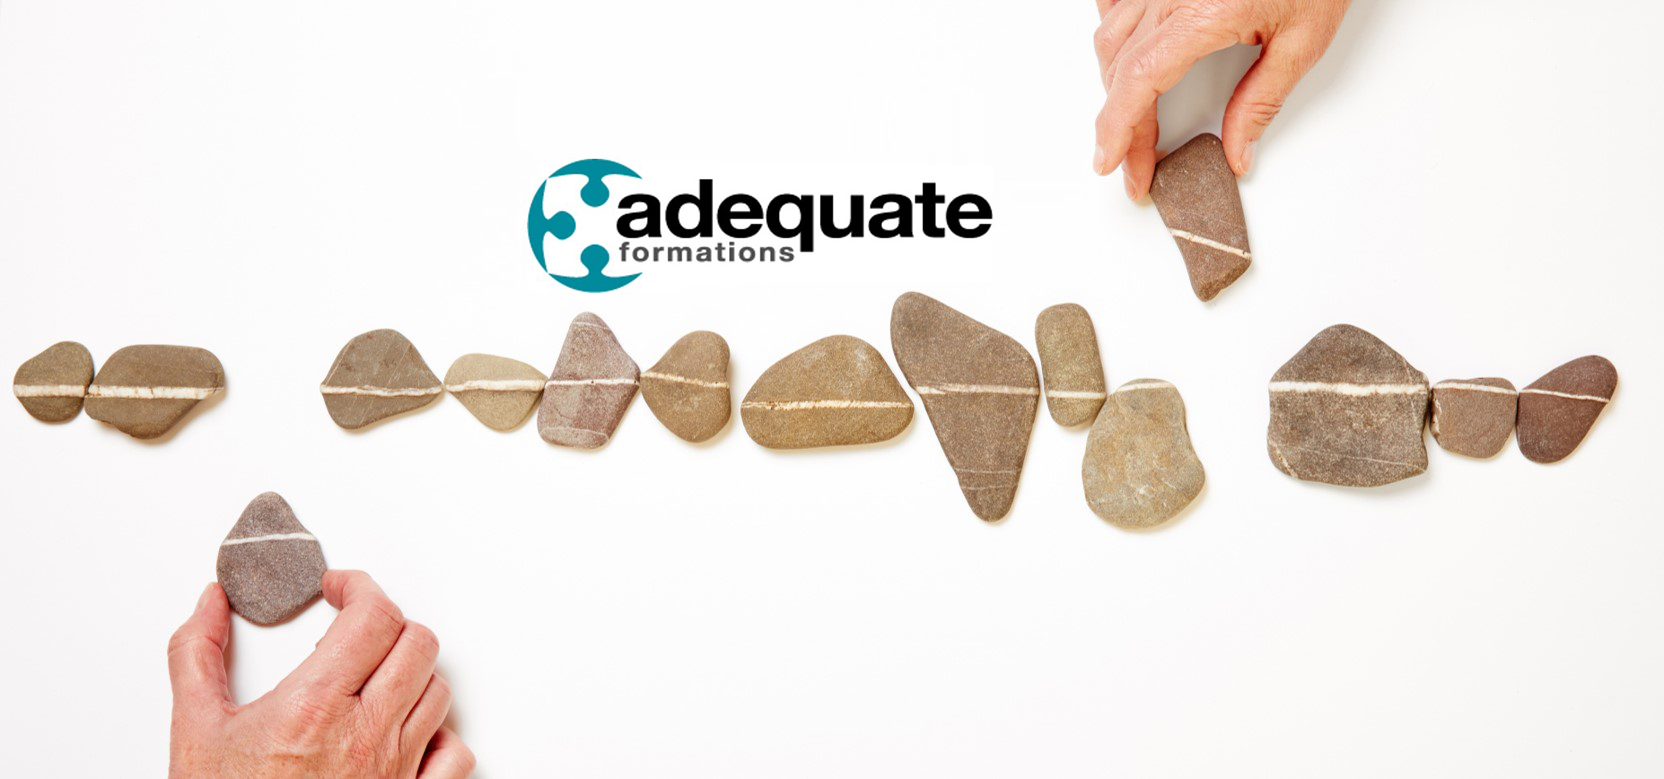 adequate formations_formation